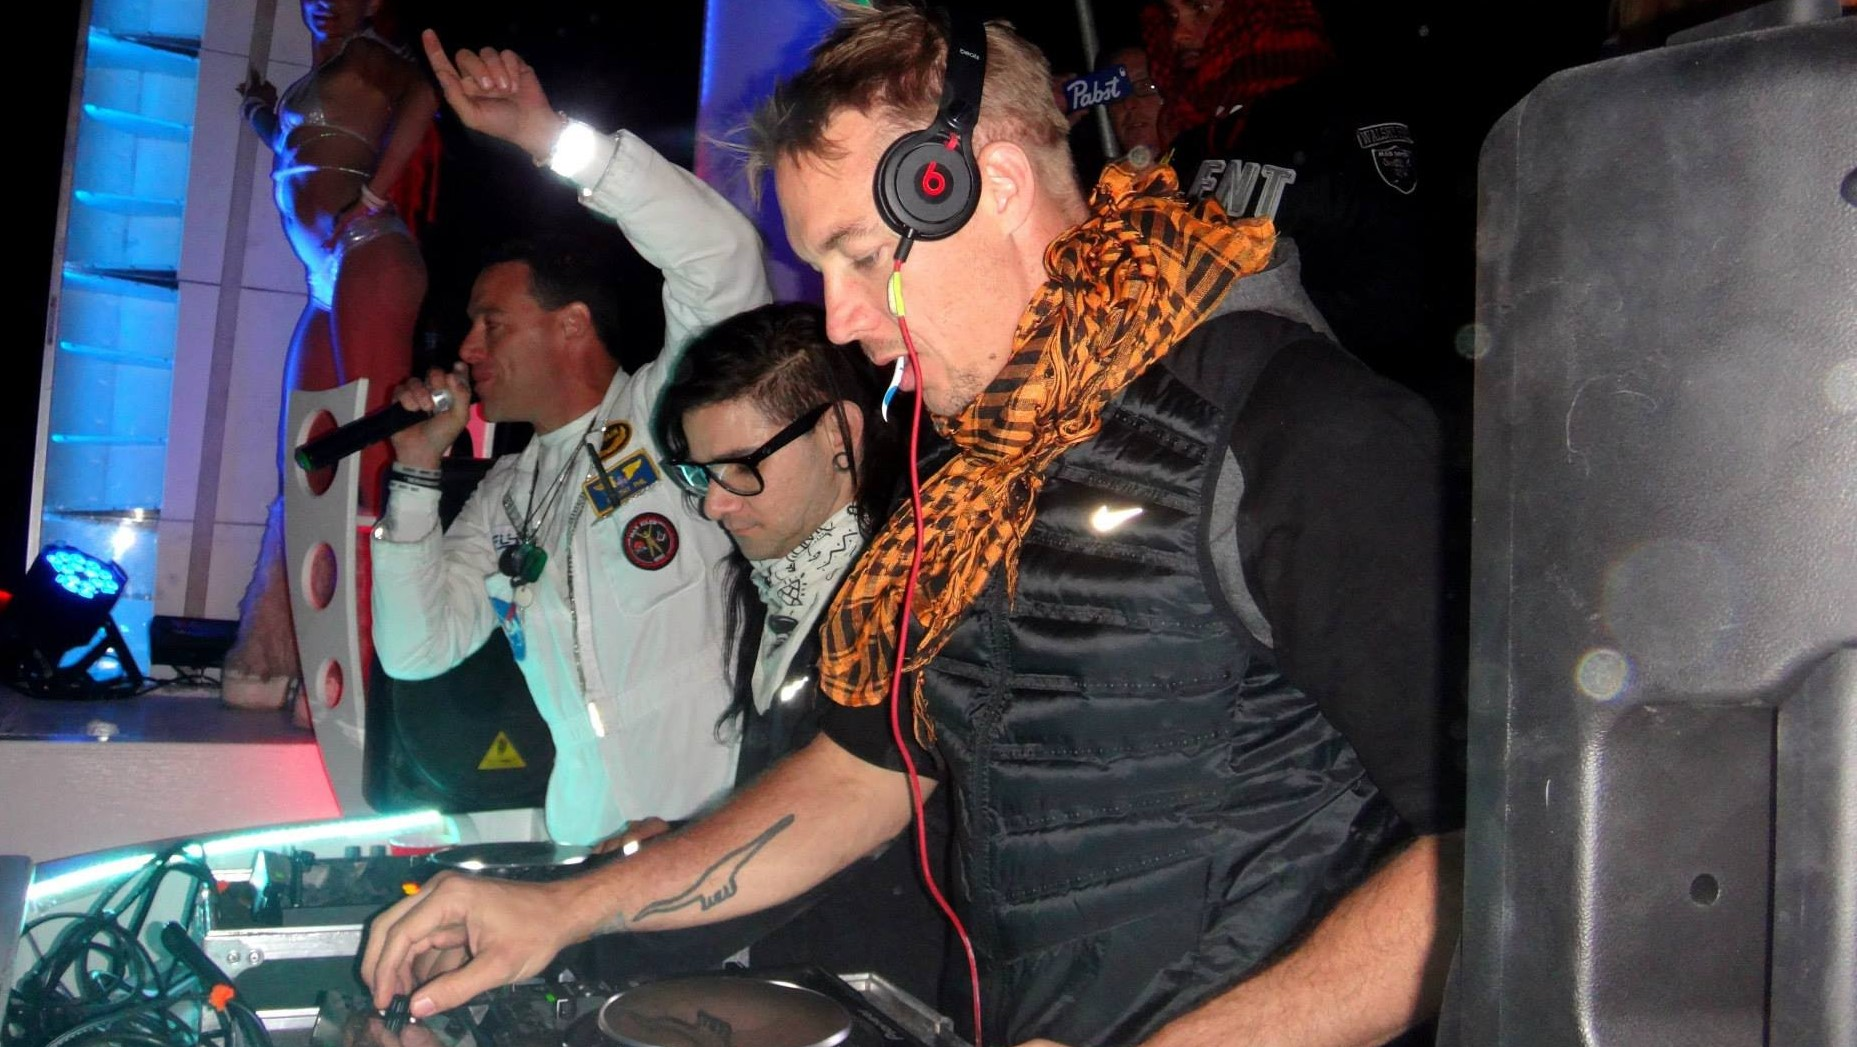 Listen To Skrillex & Diplo Play Burning Man's Camp Question